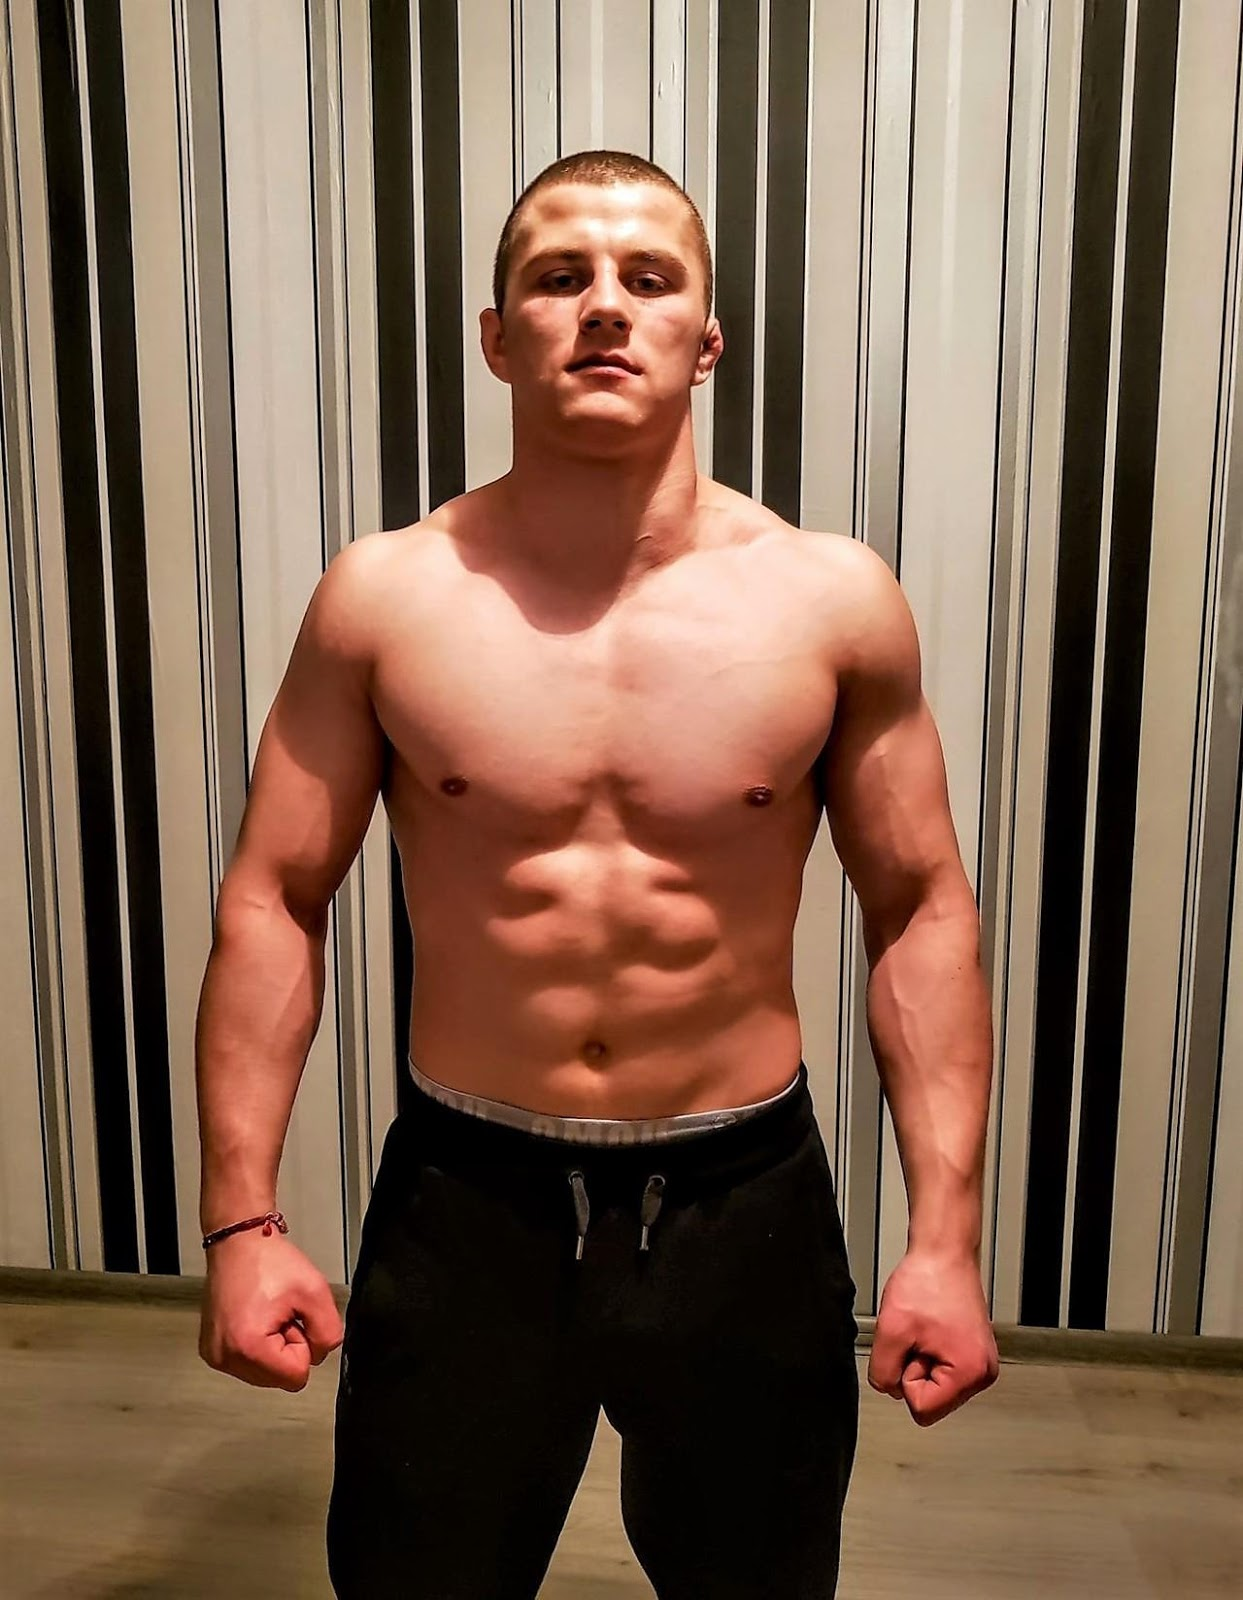 young-fit-barechest-beefy-boxer-dude-strong-fighter-body-ugly-ears-pictures